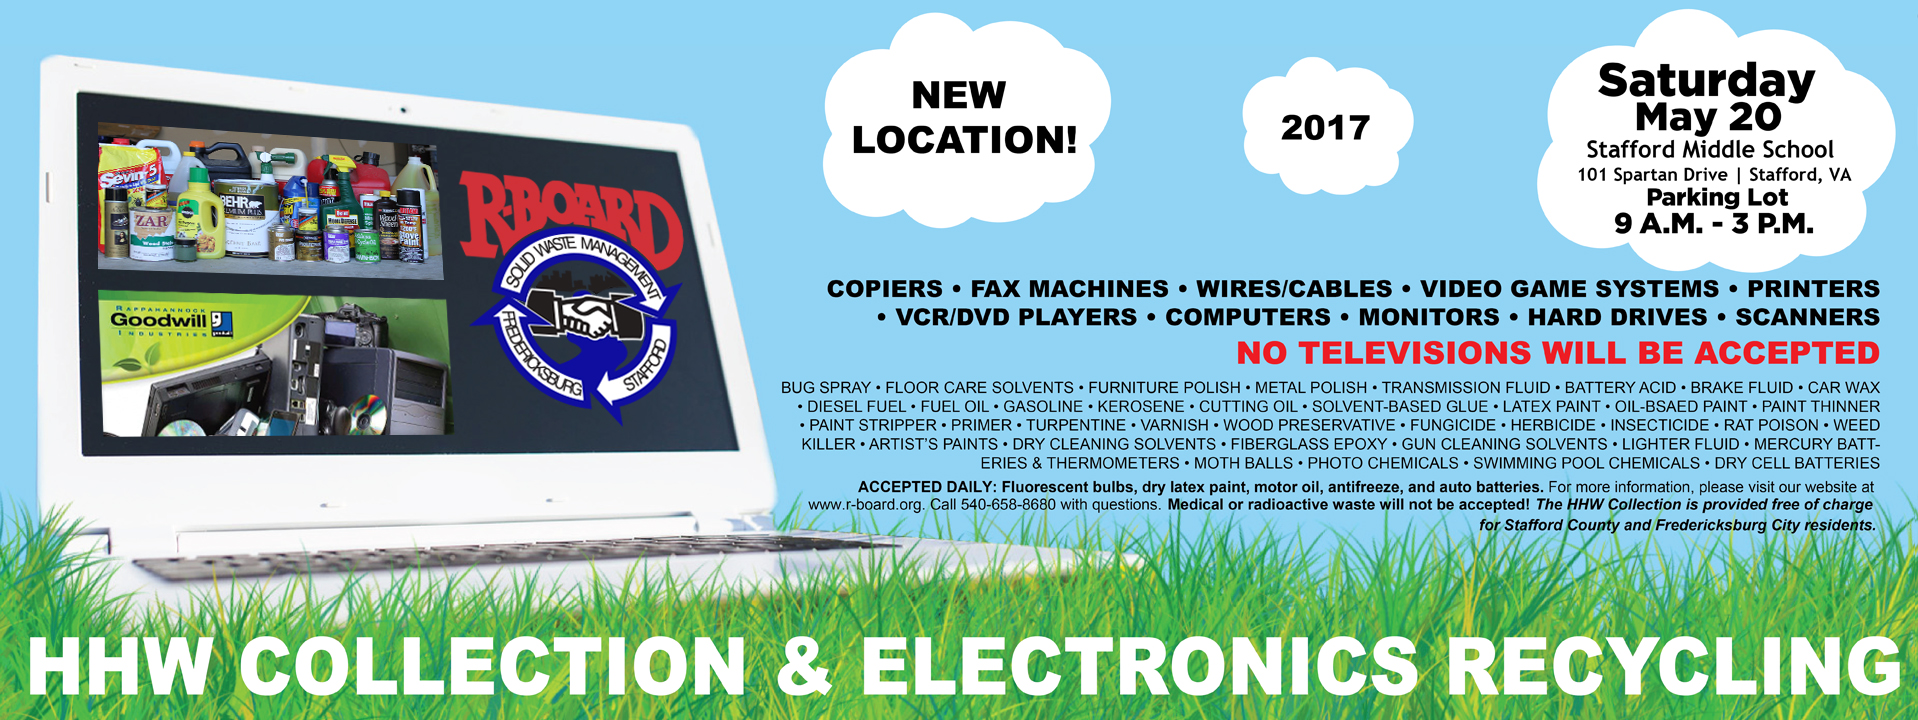 HHW Collection & Electronics Recycling